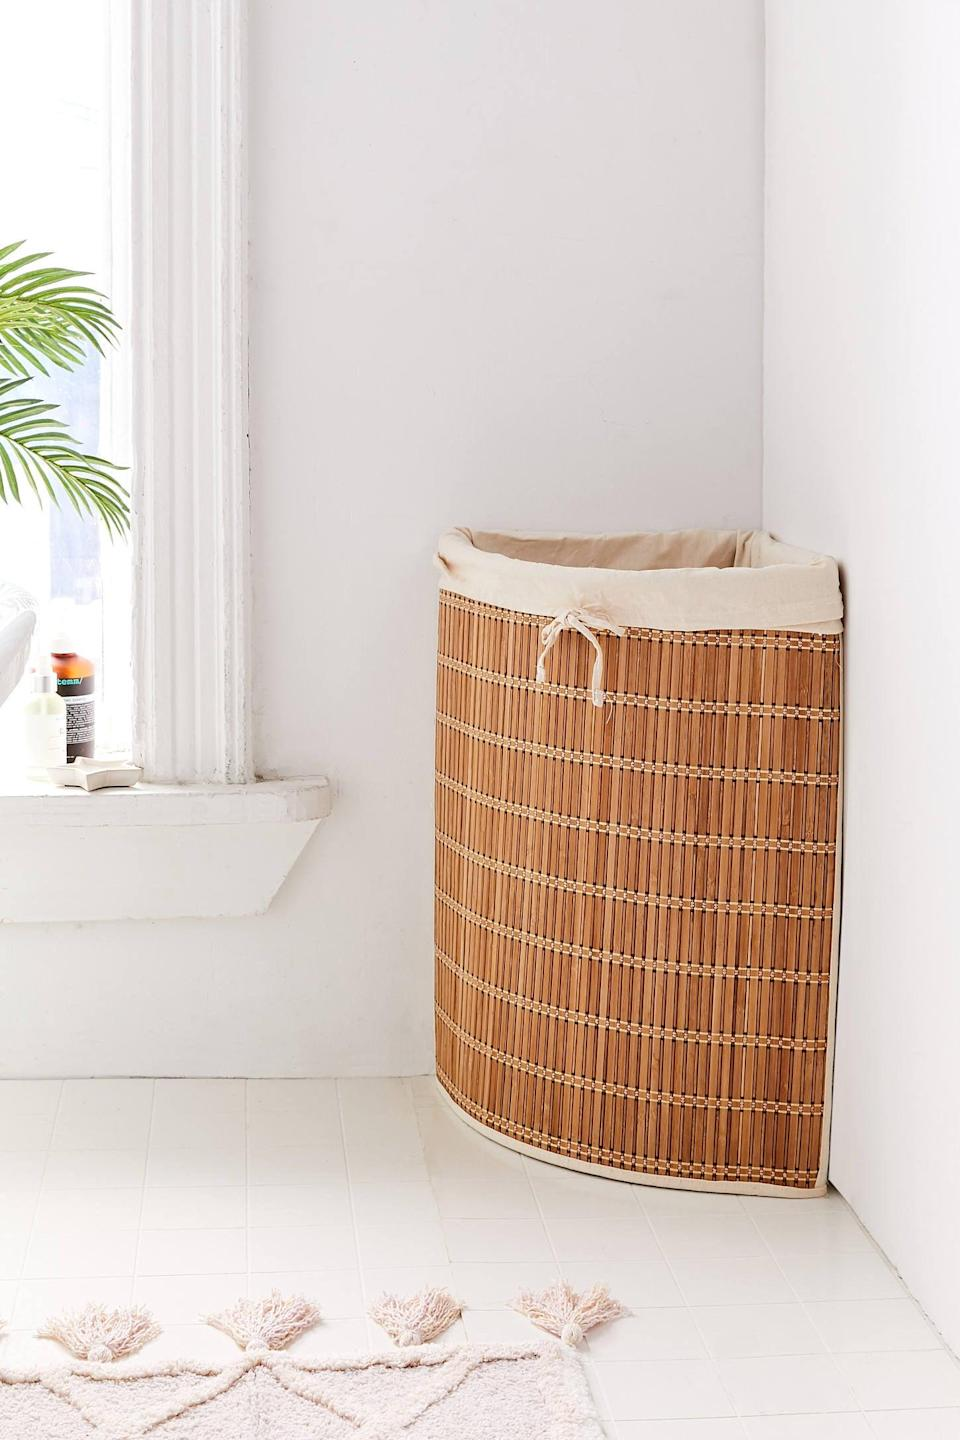 "<h3><a href=""https://www.urbanoutfitters.com/shop/wicker-corner-hamper"" rel=""nofollow noopener"" target=""_blank"" data-ylk=""slk:Urban Outfitters Wicker Corner Hamper"" class=""link rapid-noclick-resp"">Urban Outfitters Wicker Corner Hamper</a></h3><br><strong>When you don't have a closet to hide a hamper in</strong>: Instead of letting your dirty laundry pile up on the floor, store it inside a space-savvy wick hamper designed to tuck into an empty corner of your room.<br><br><strong>Urban Outfitters</strong> Wicker Corner Hamper, $, available at <a href=""https://go.skimresources.com/?id=30283X879131&url=https%3A%2F%2Fwww.urbanoutfitters.com%2Fshop%2Fwicker-corner-hamper"" rel=""nofollow noopener"" target=""_blank"" data-ylk=""slk:Urban Outfitters"" class=""link rapid-noclick-resp"">Urban Outfitters</a>"